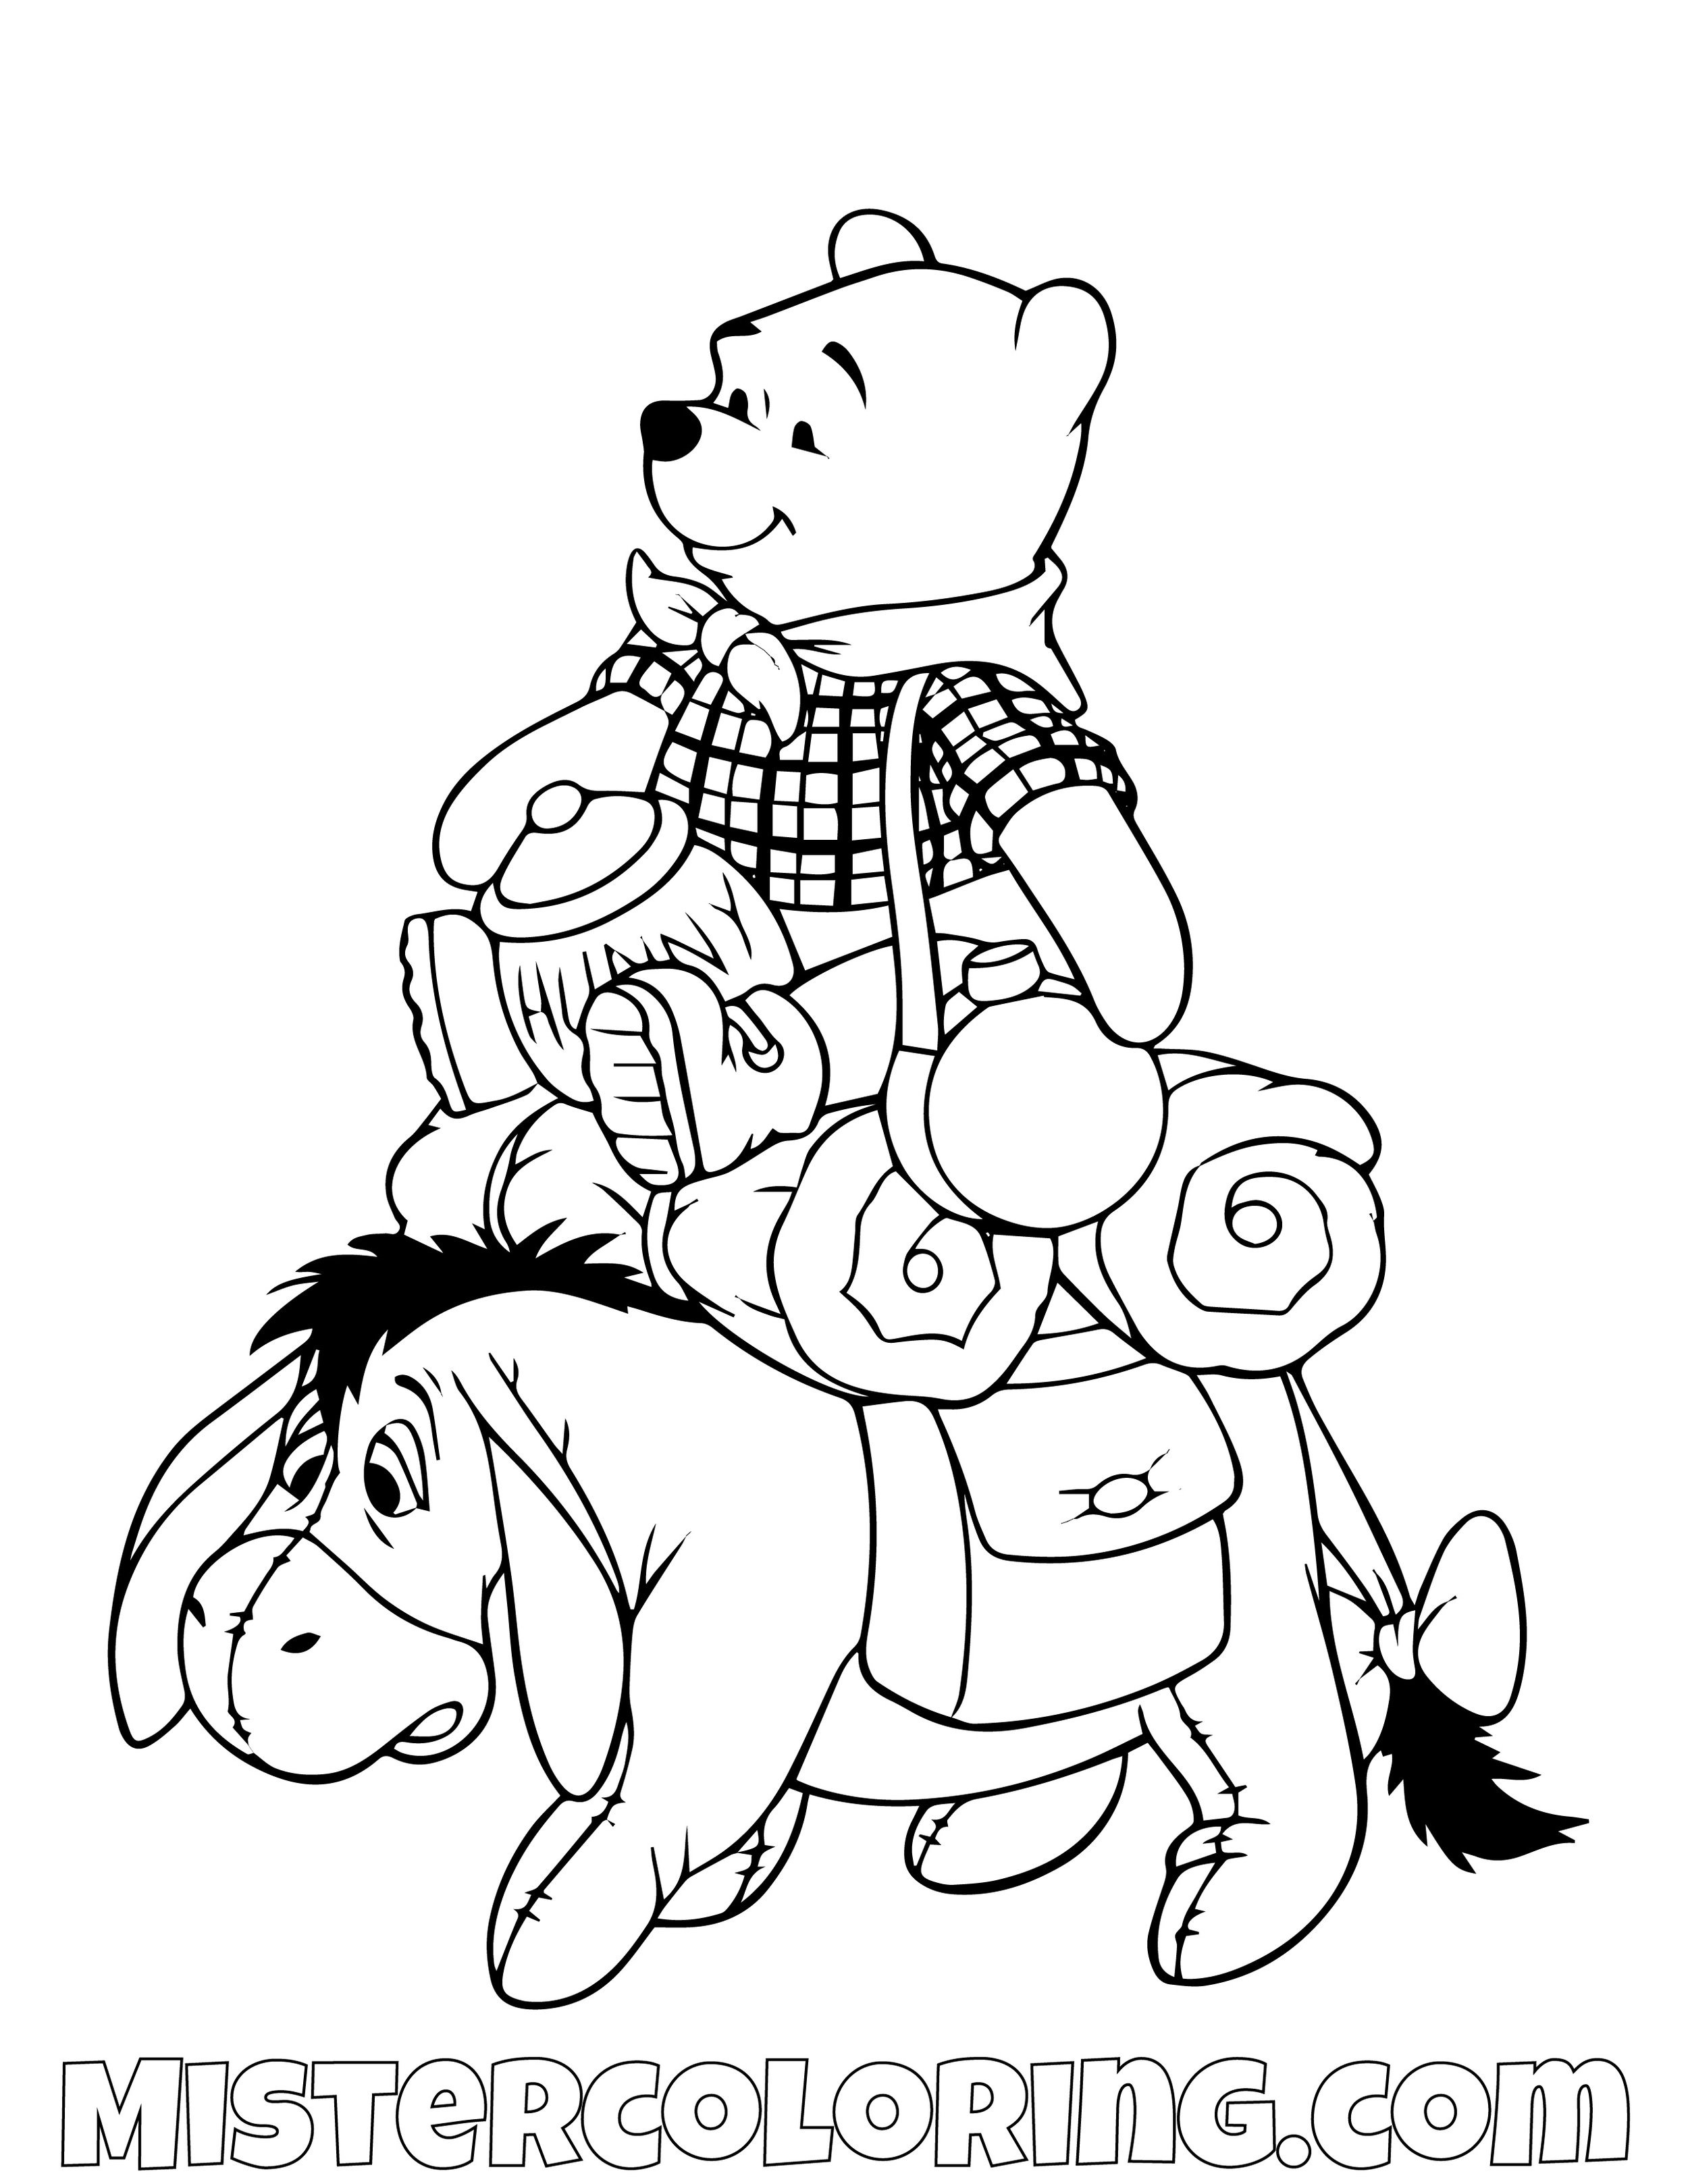 Winnie The Pooh And Eeyore Traveling Coloring Page